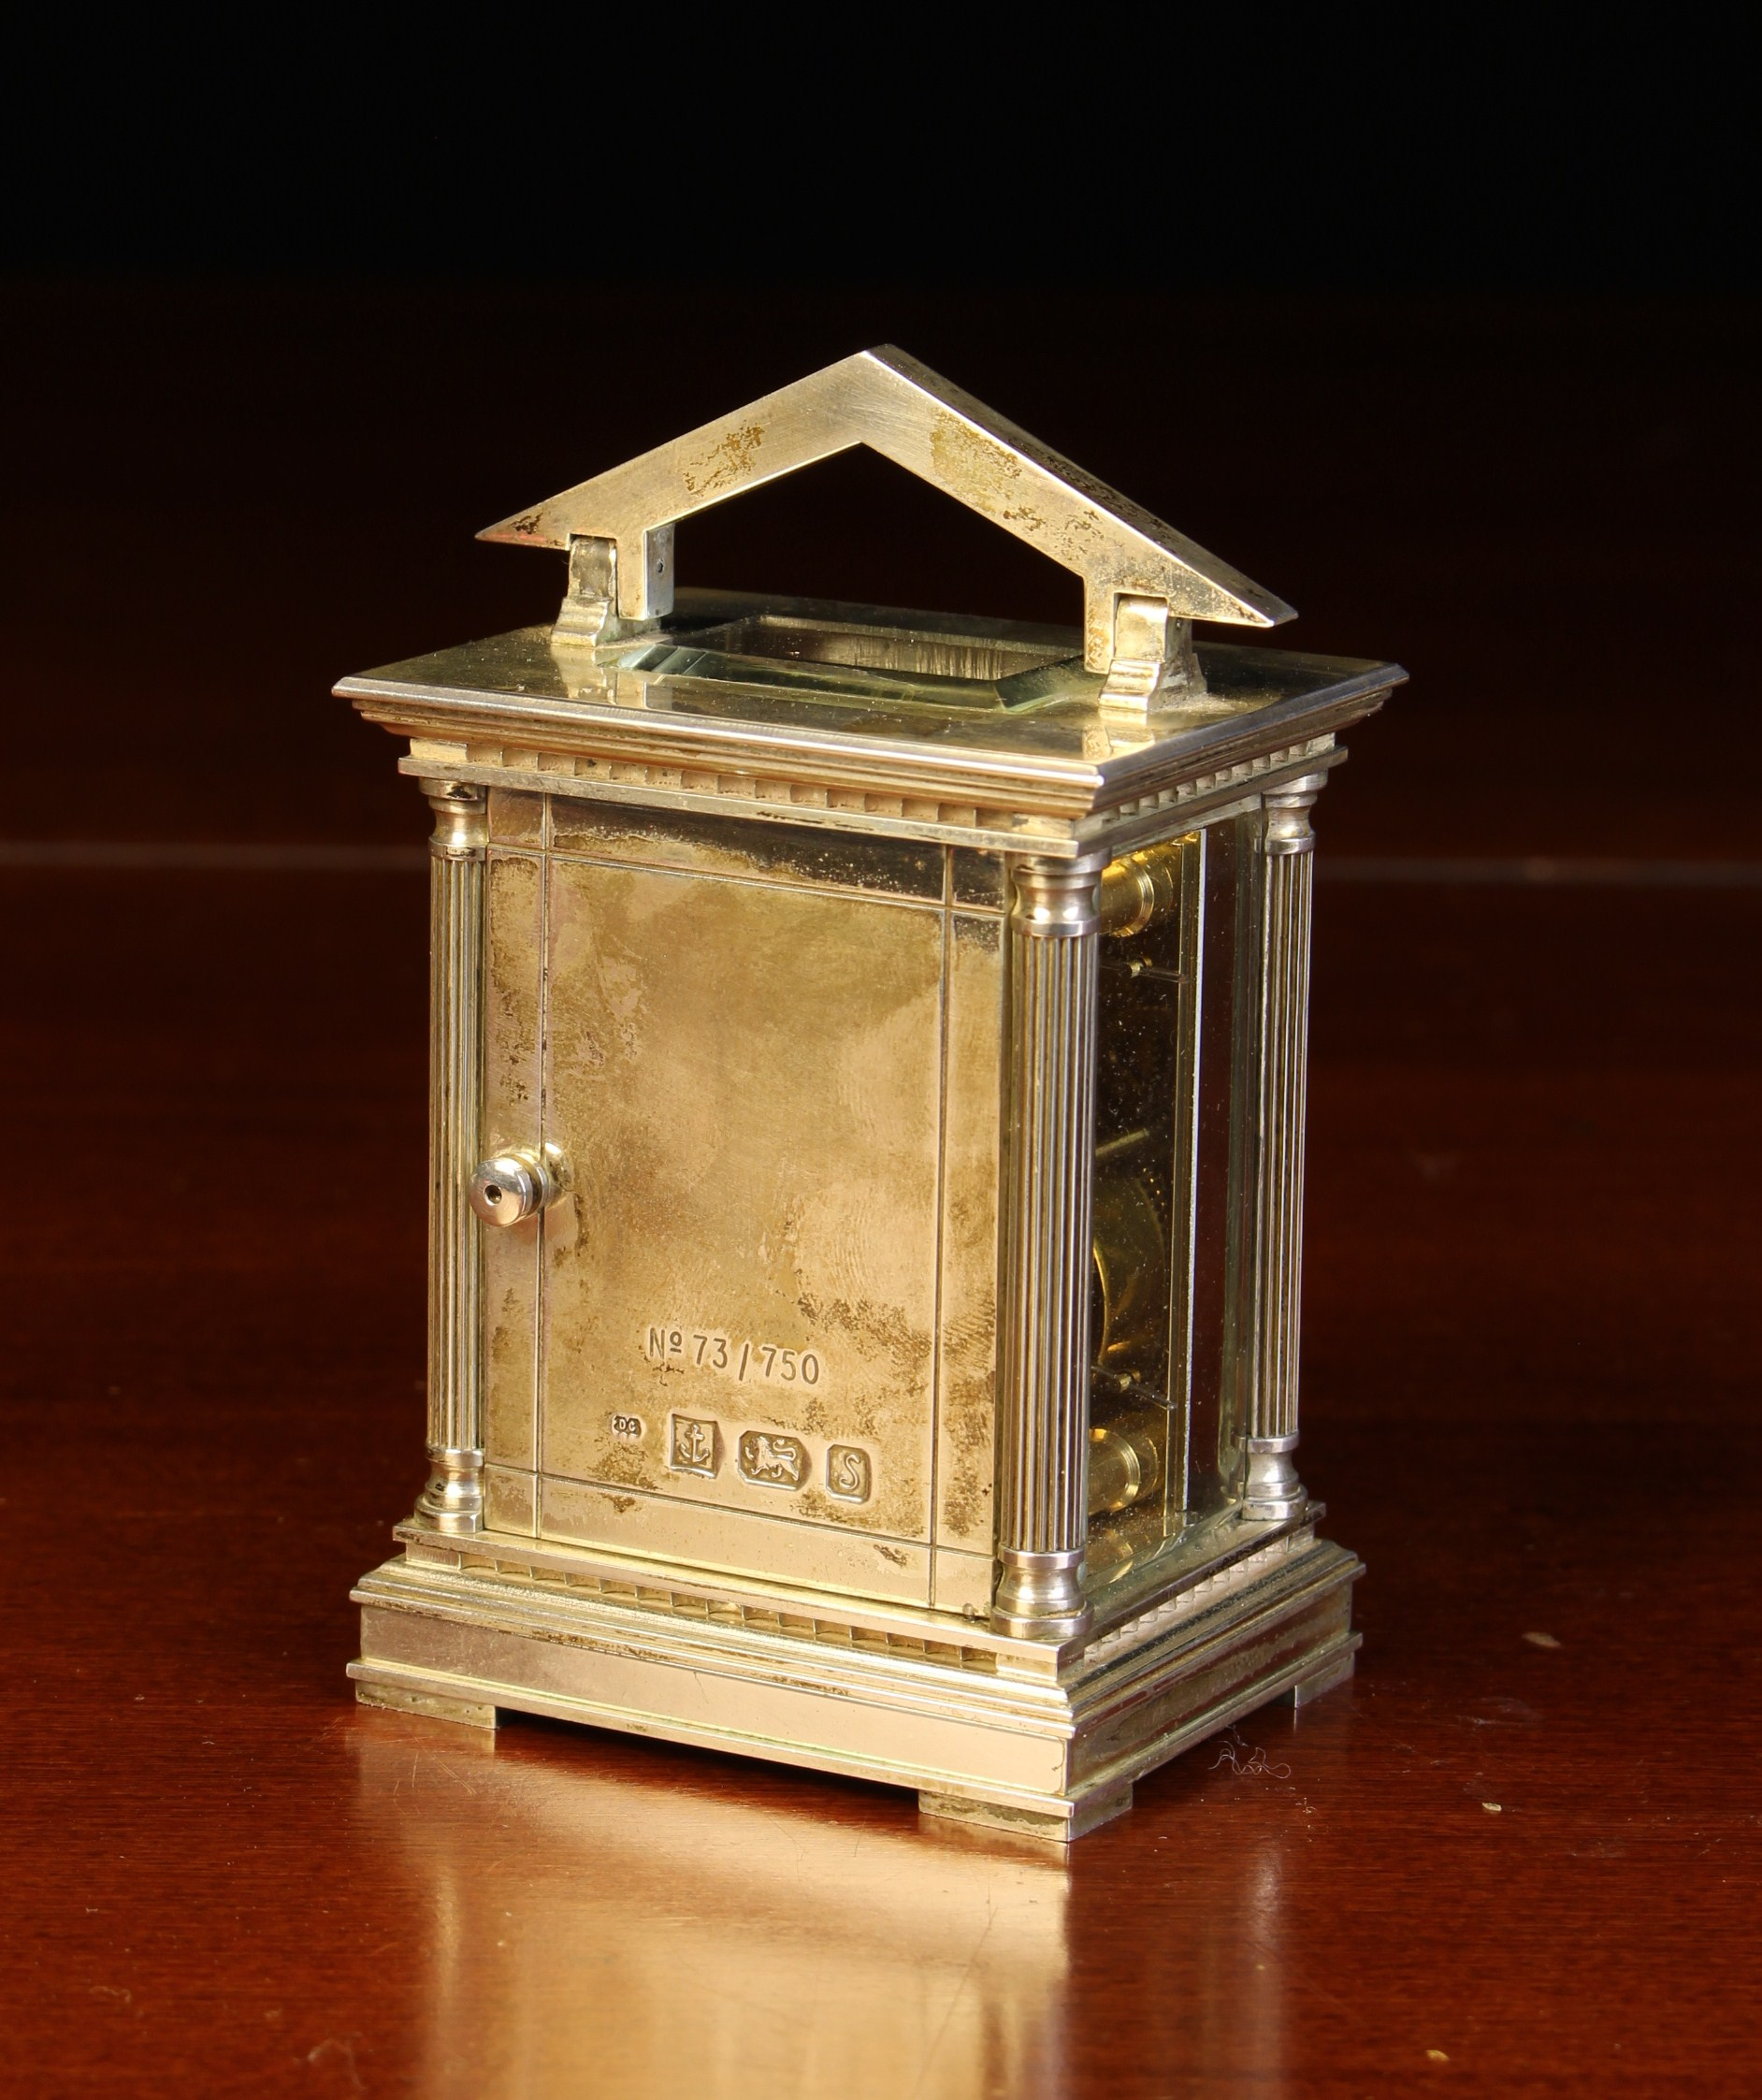 A Miniature Limited Edition Silver Carriage Clock by Chas. - Image 3 of 4